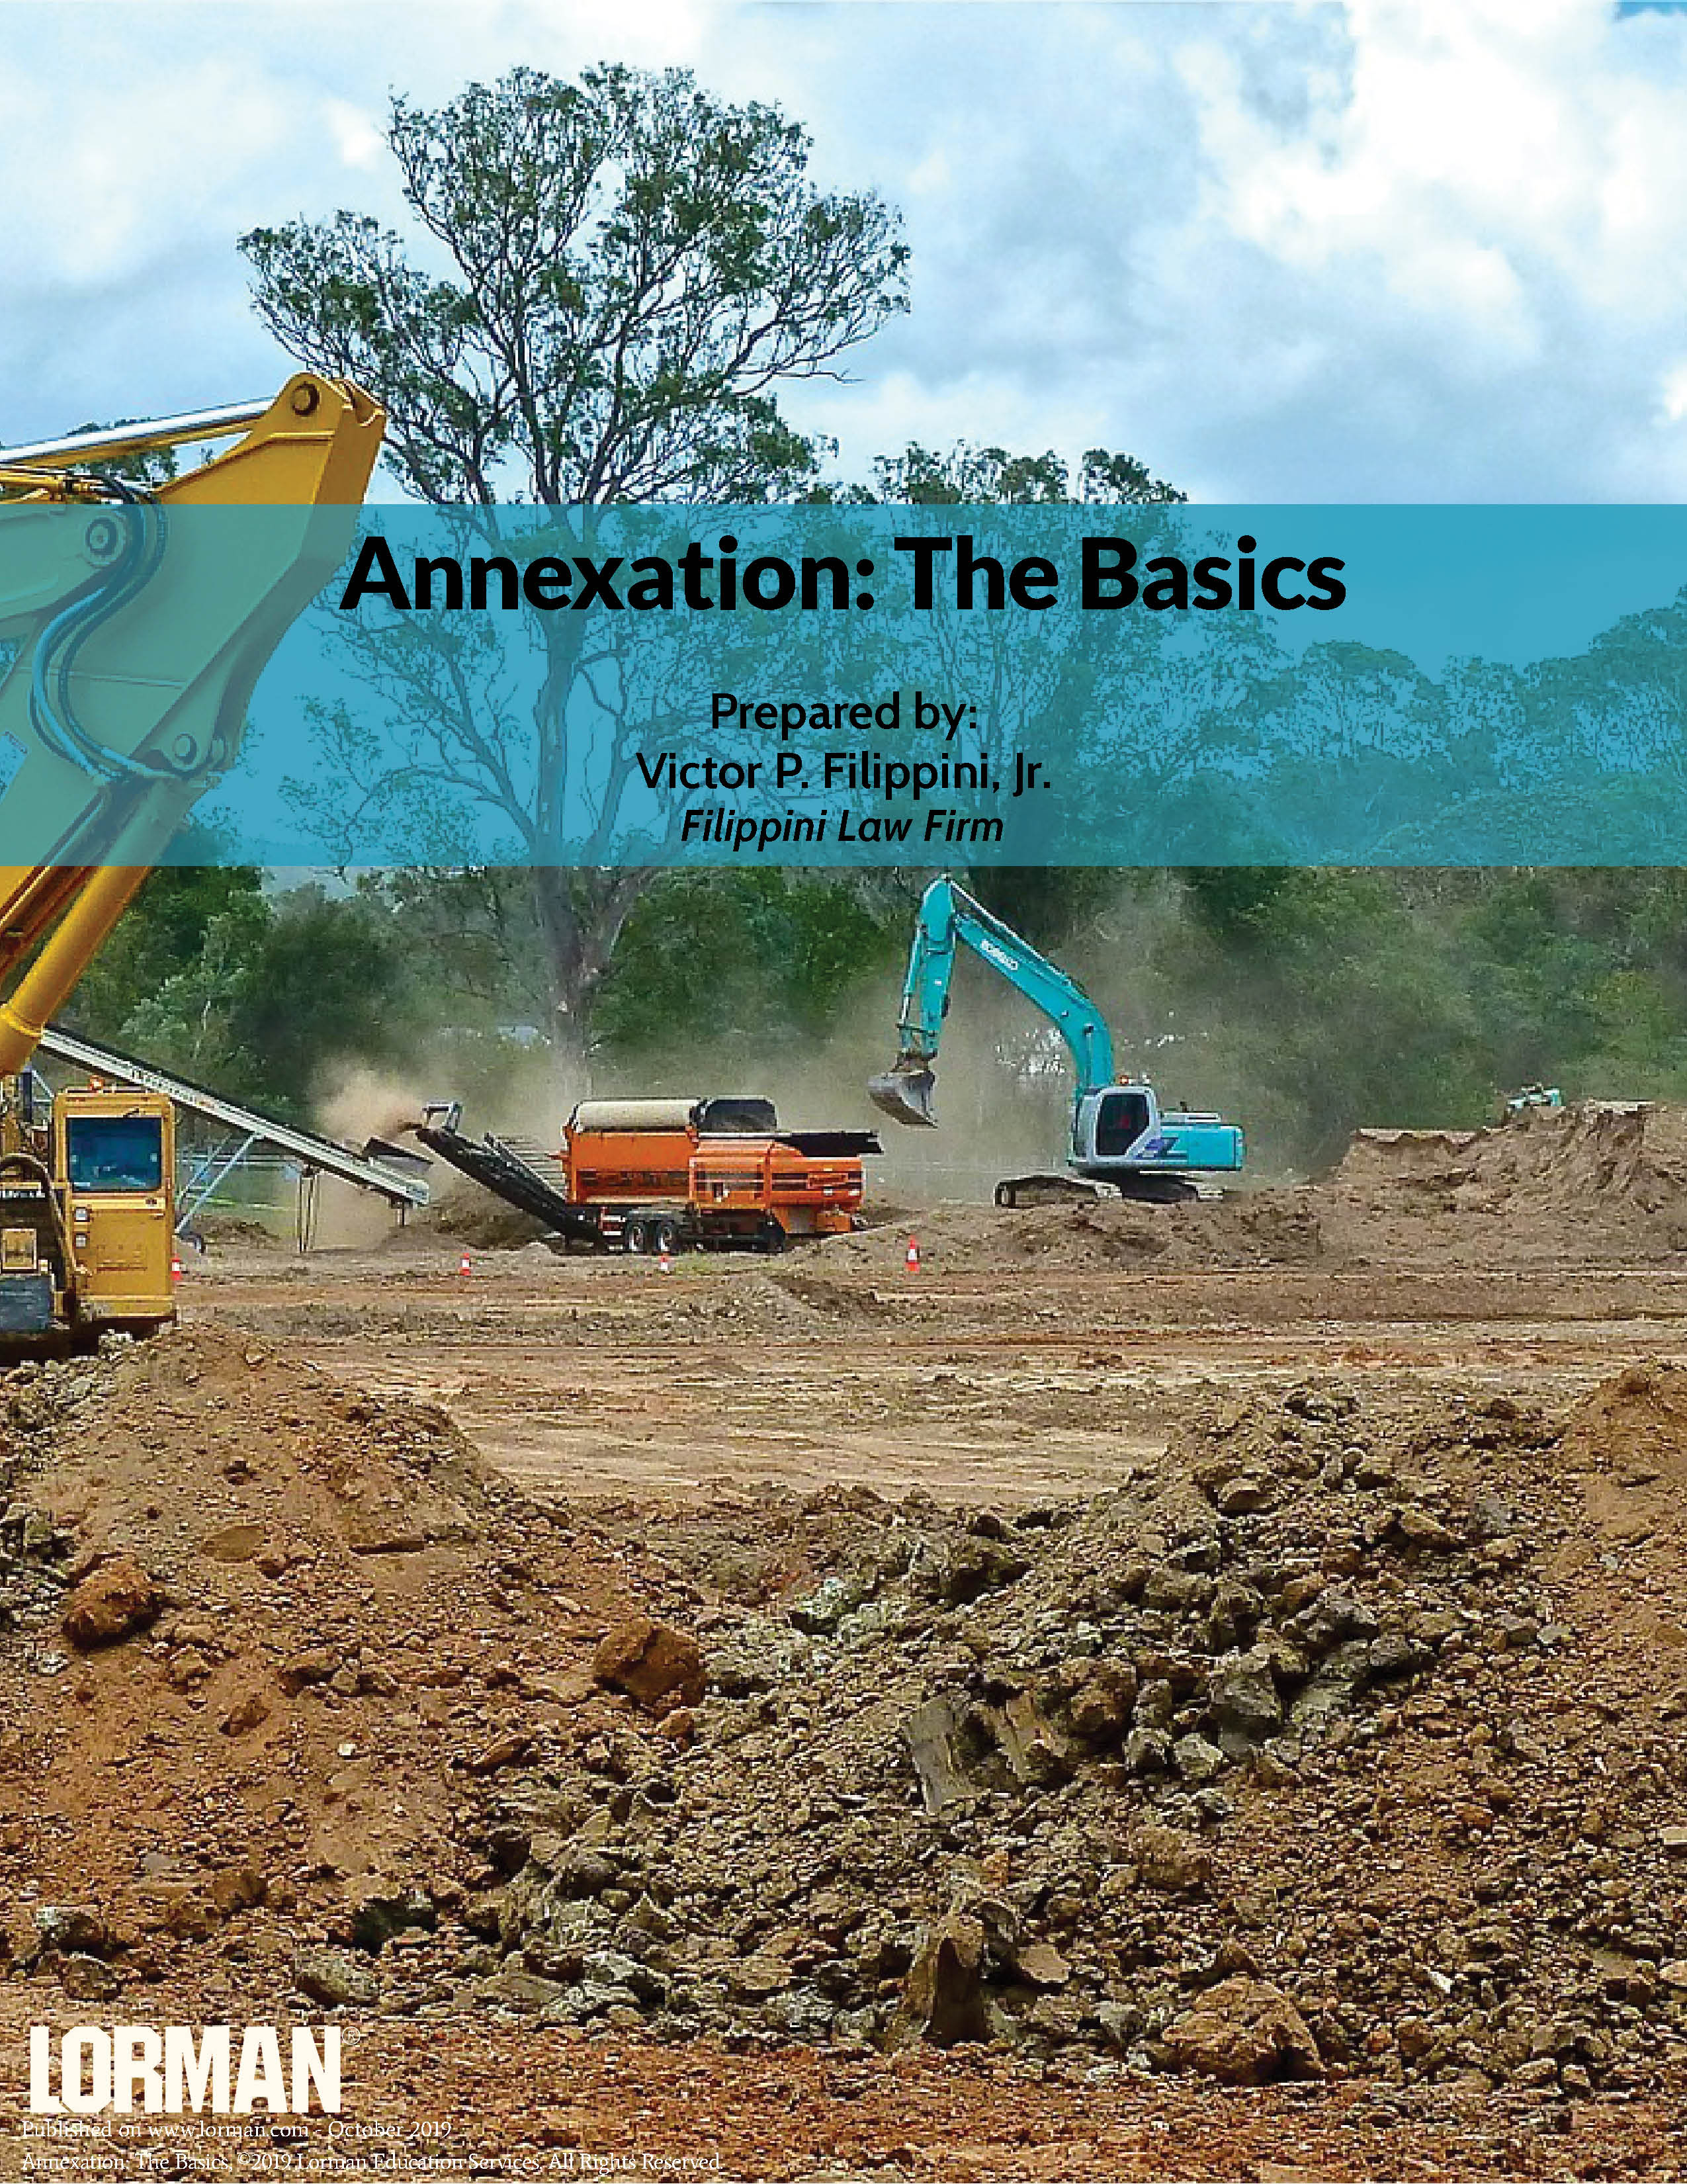 Annexation: The Basics